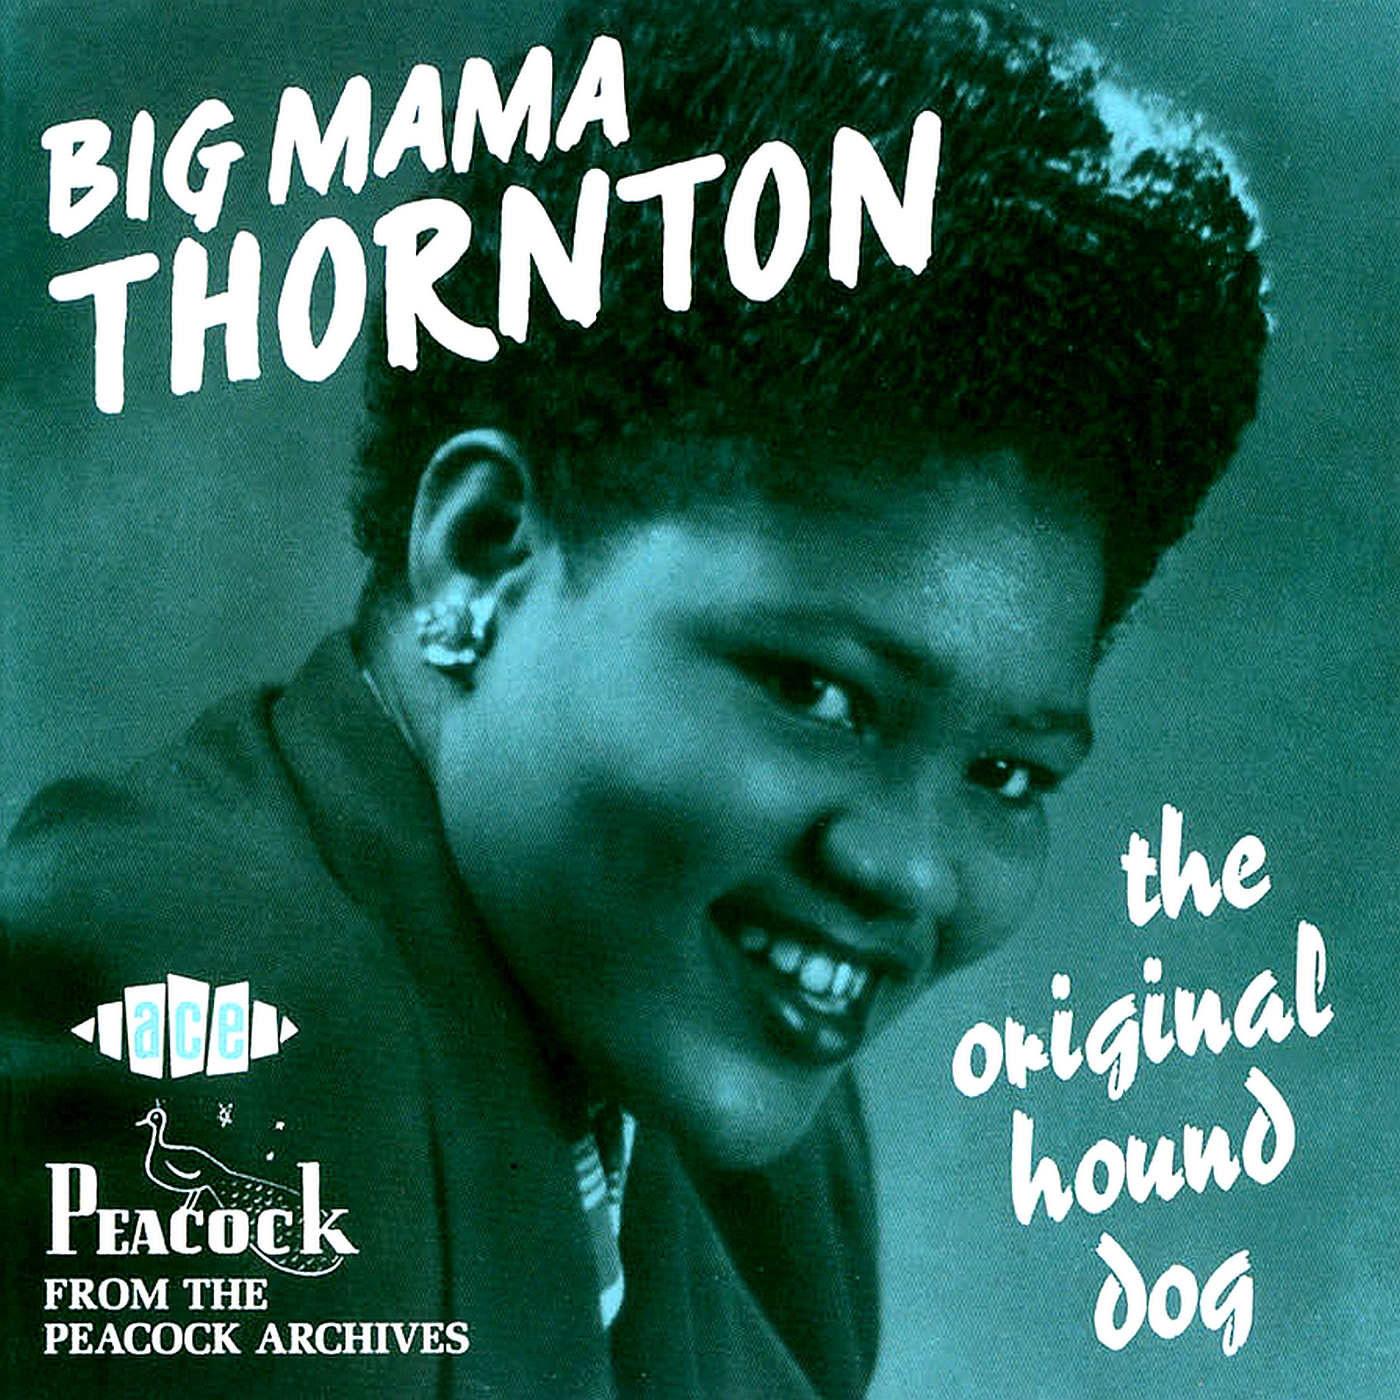 Big Mama Thornton - The Original Hound Dog (1990) f.jpg